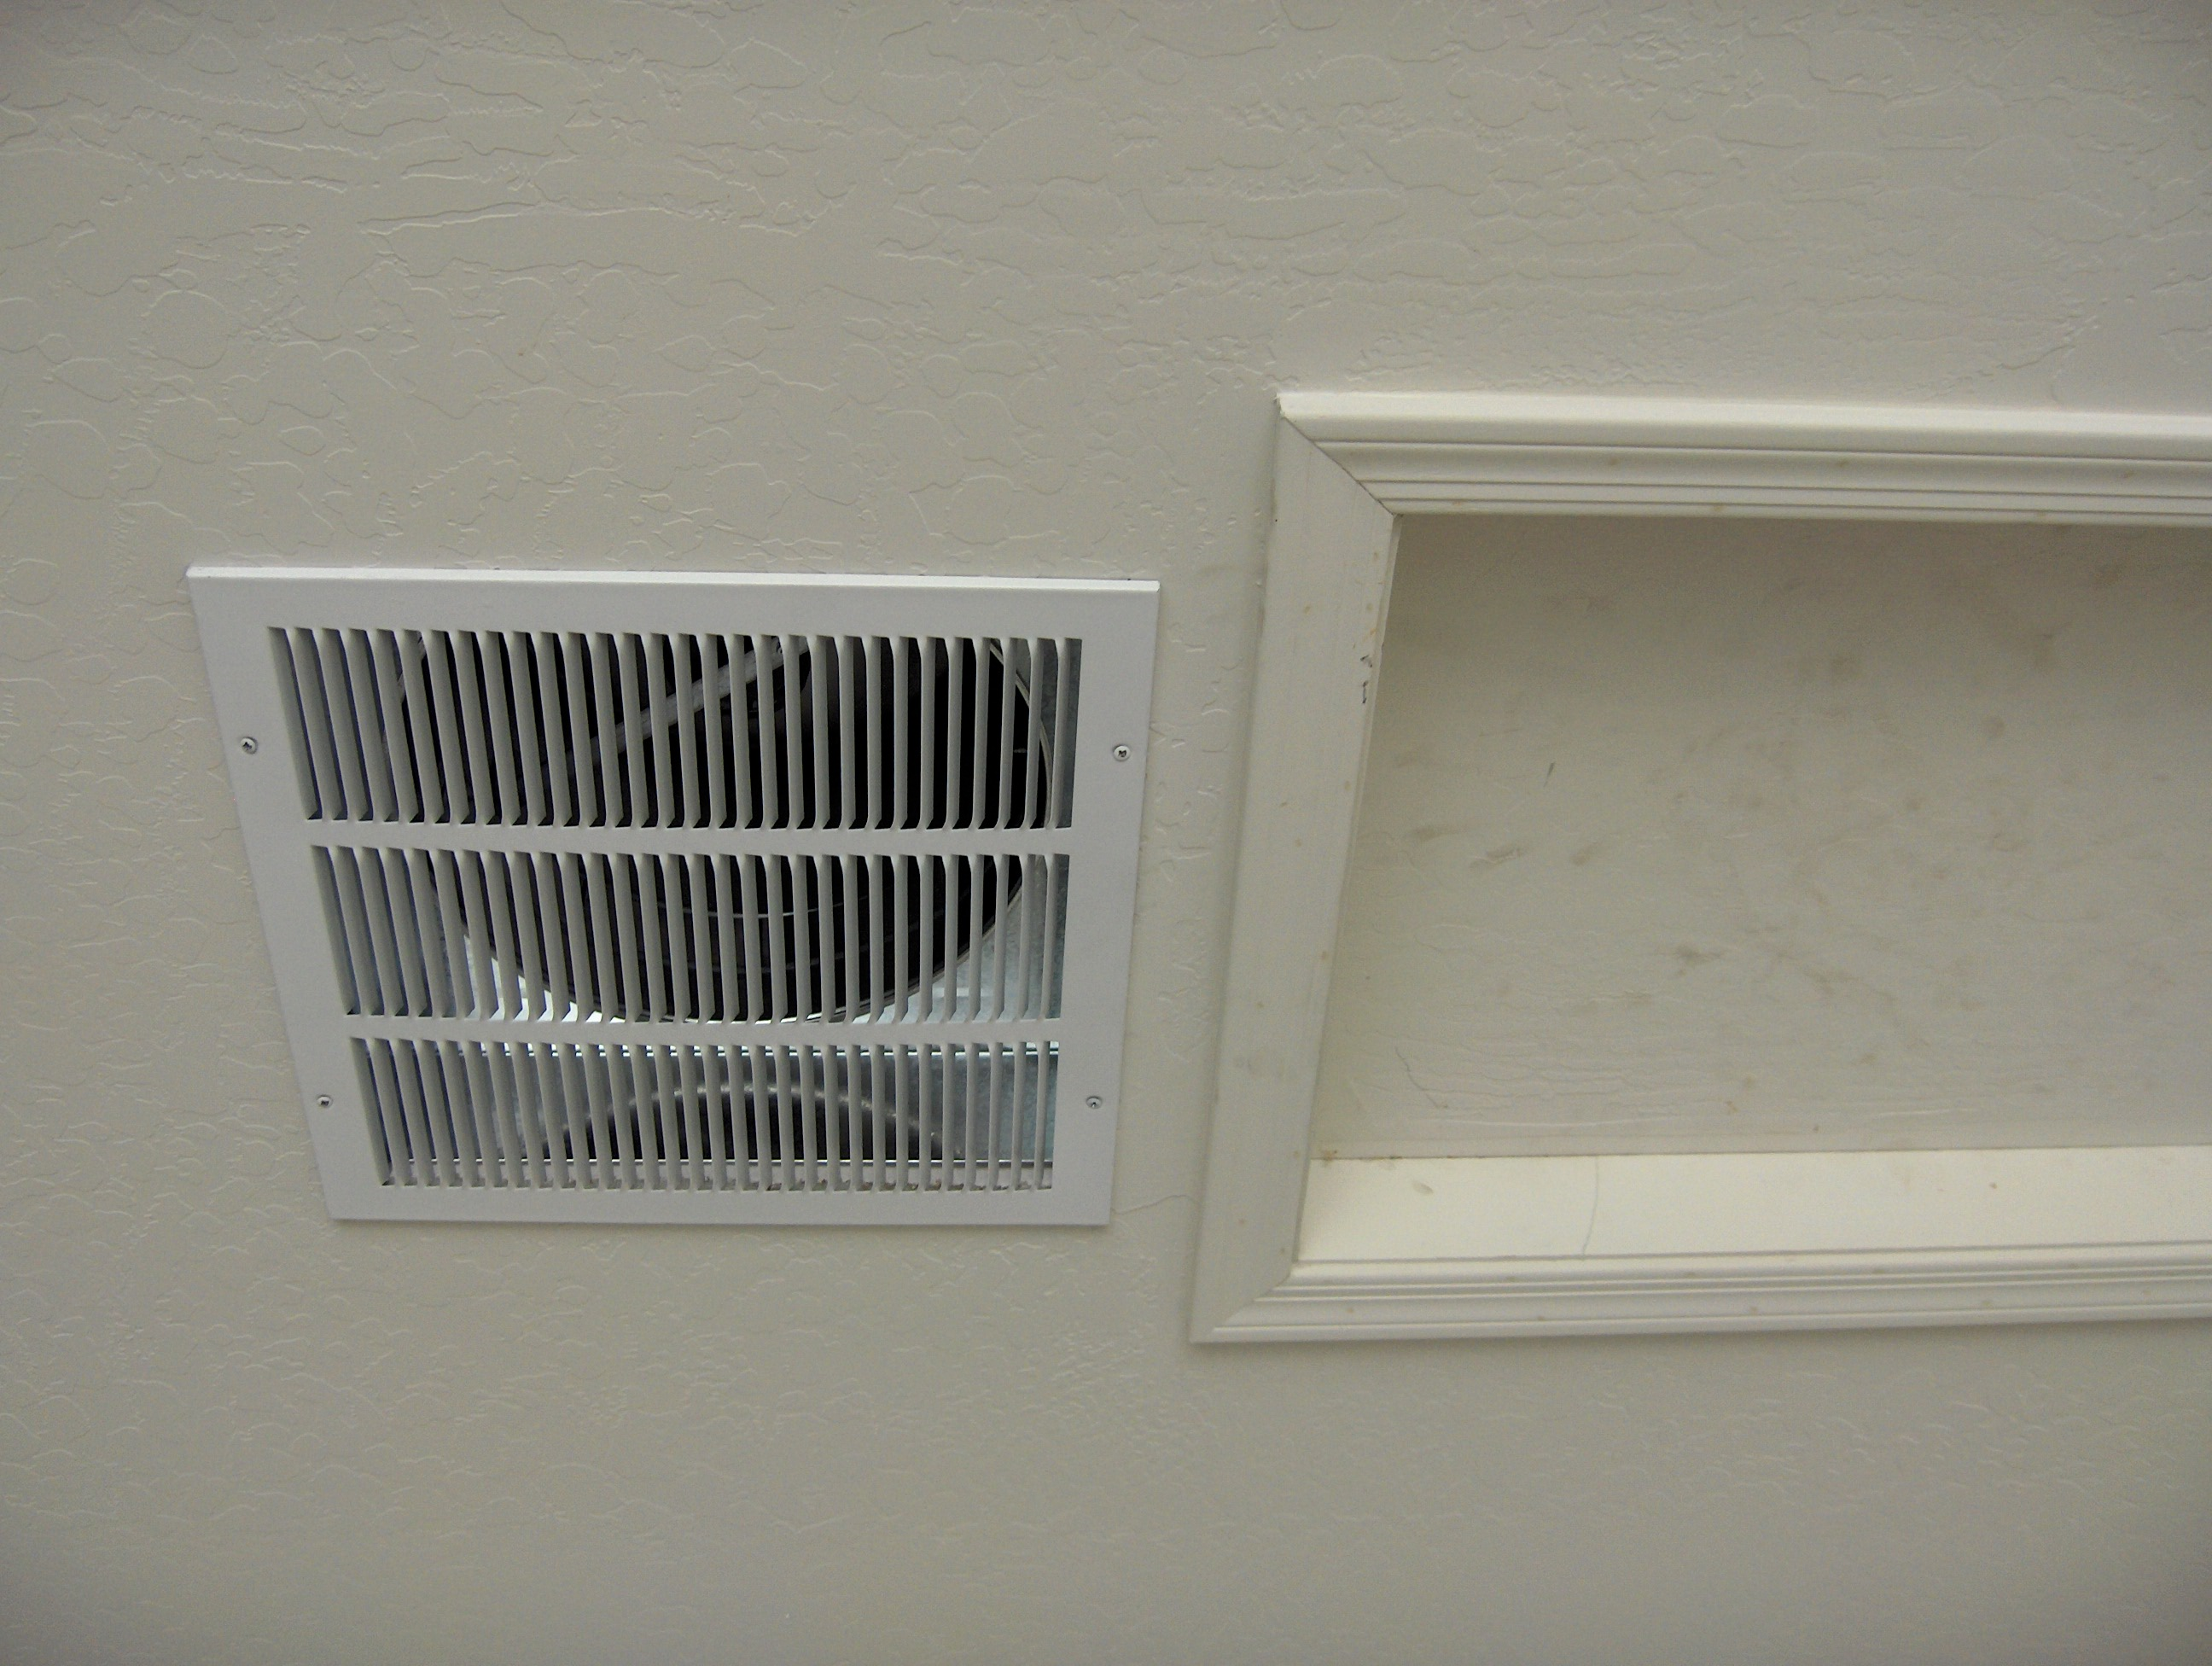 Bathroom Exhaust Fan Into Garage The Gf 14 Garage Fan And Attic Cooler Buy Direct